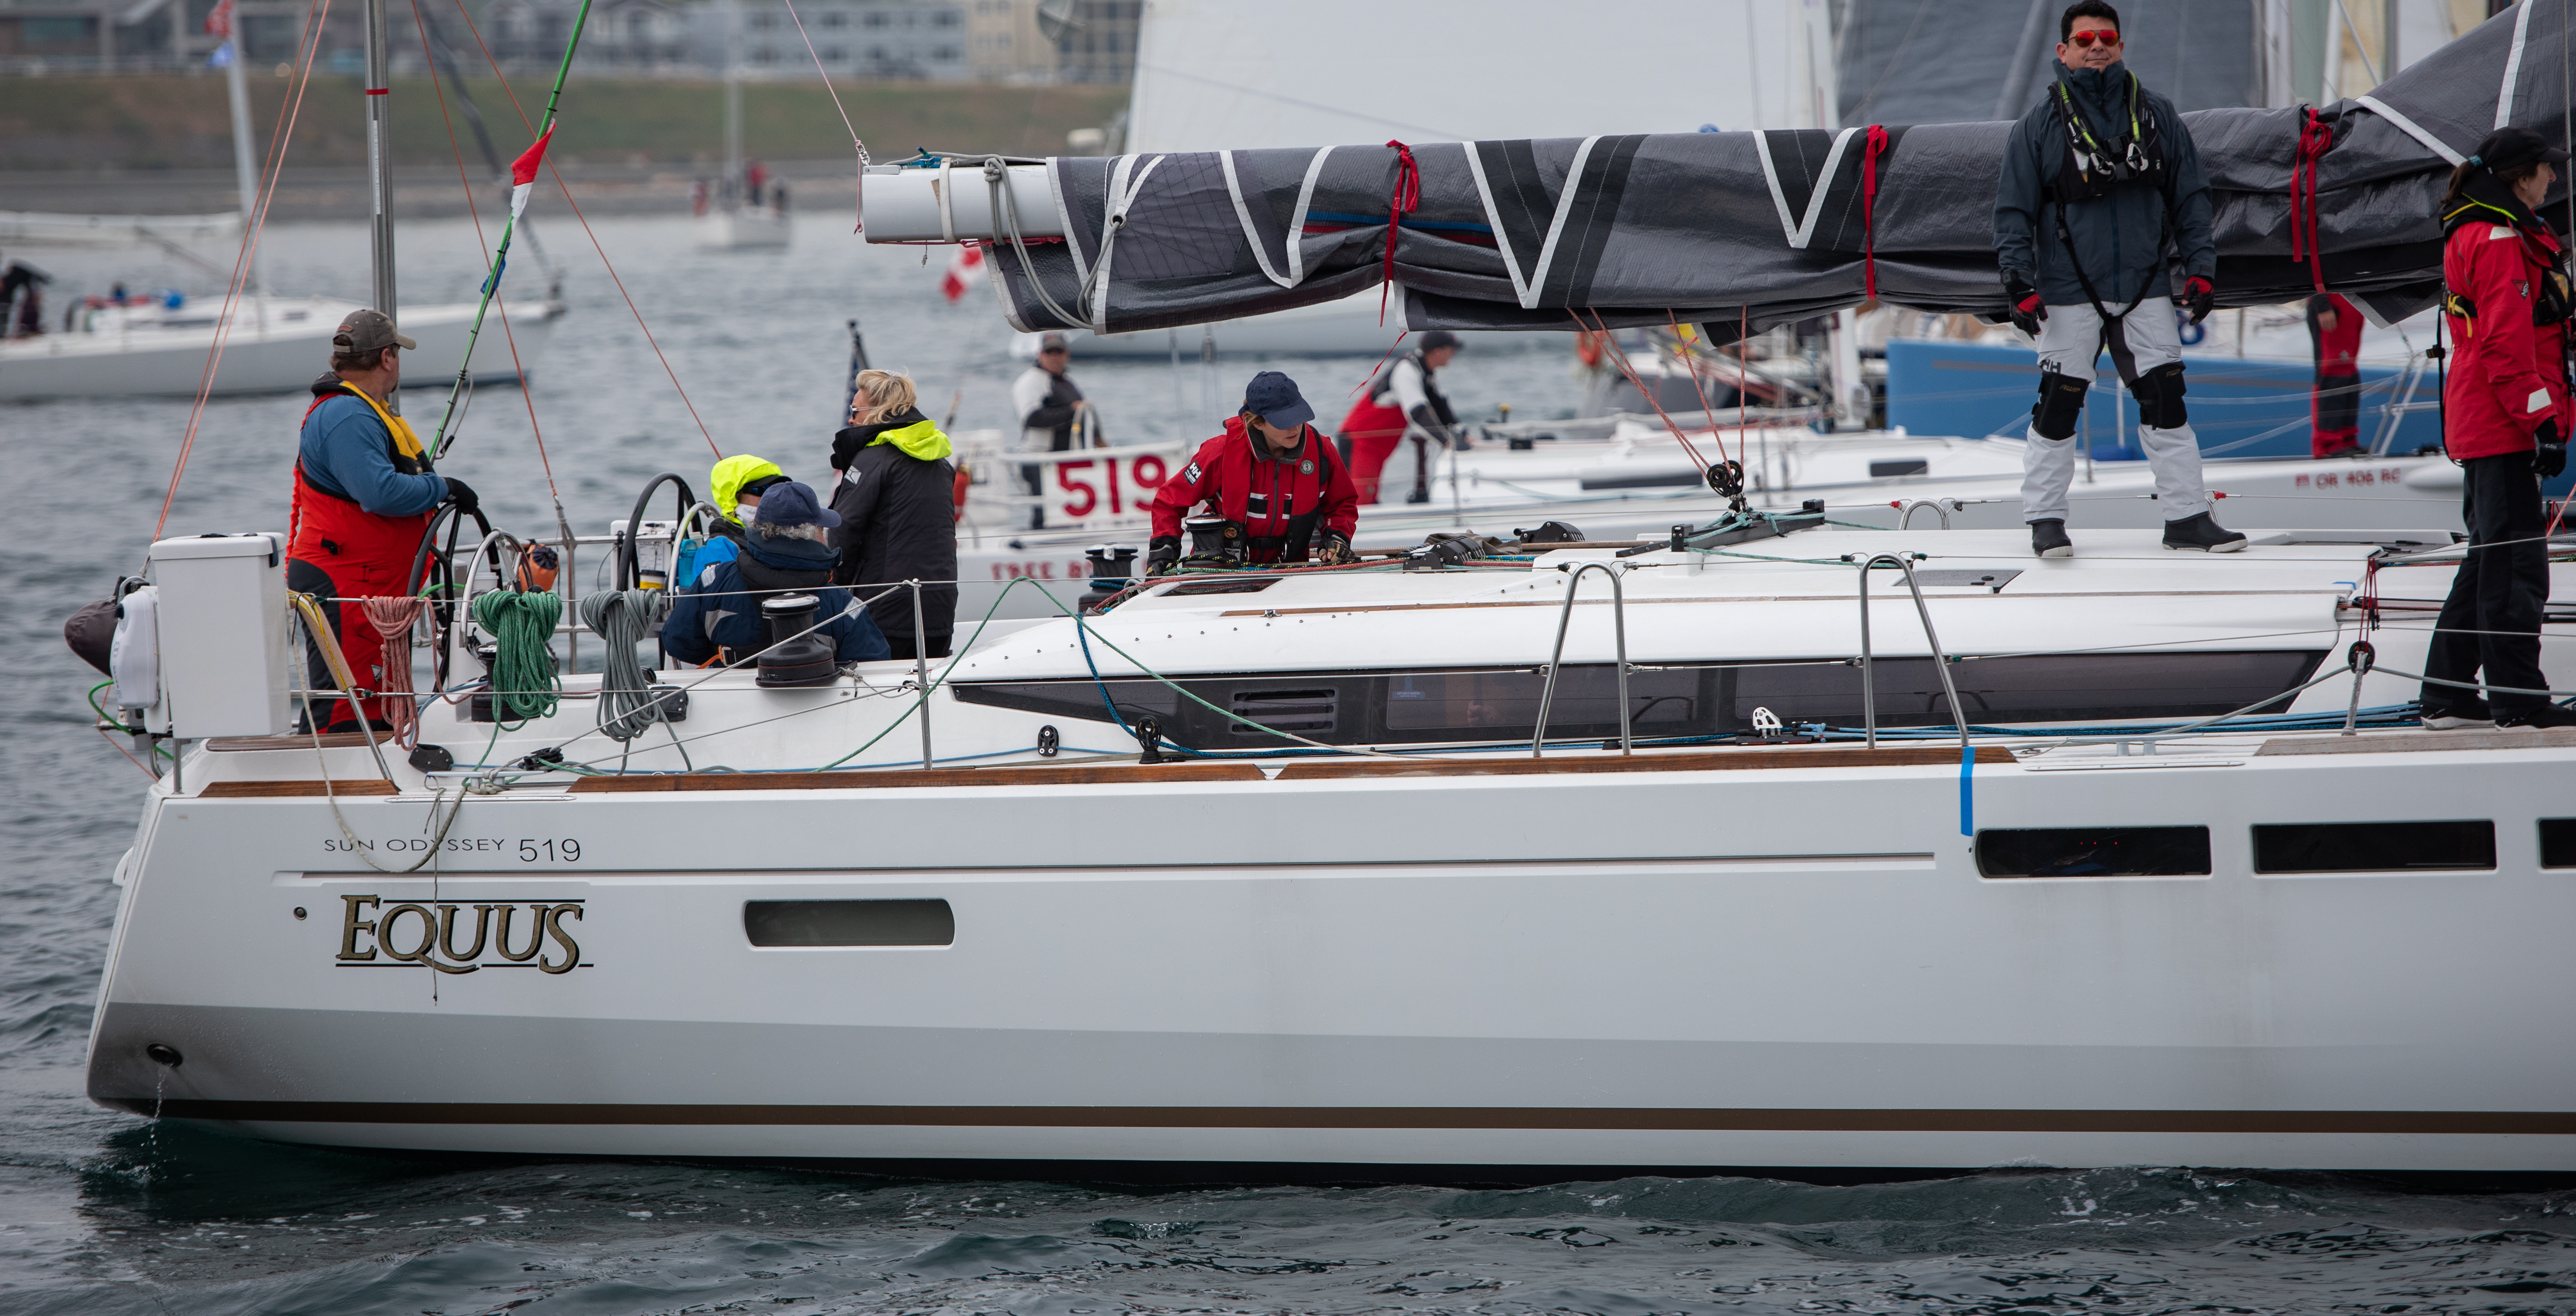 Swiftsure-25-May-2019-RMS-Media-by-Rob-Porter-28